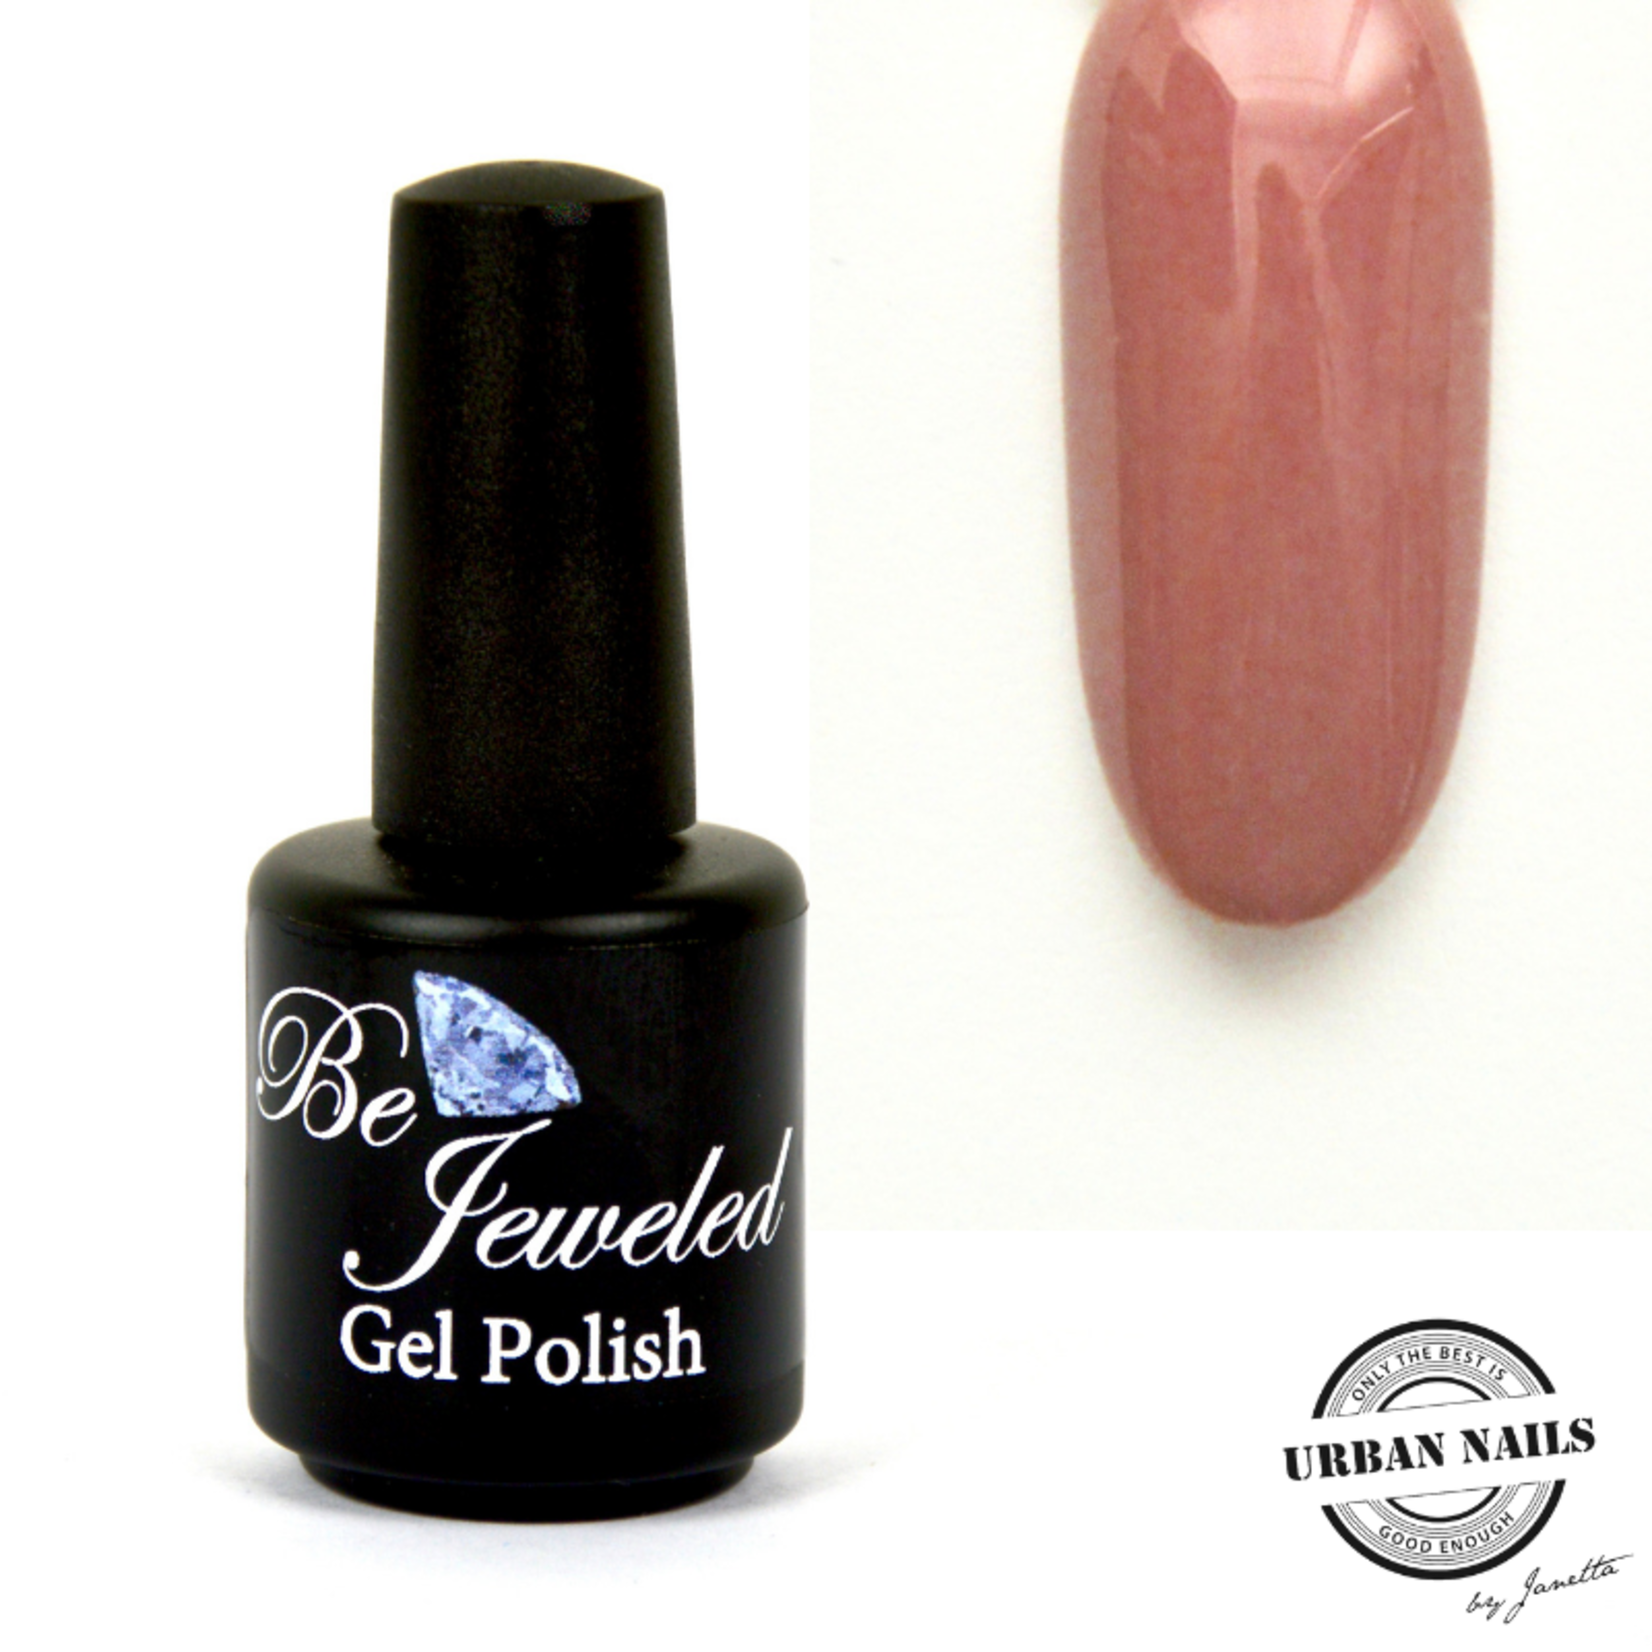 Urban Nails Be Jeweled Gelpolish 38 Licht Taupe Met Shimmer